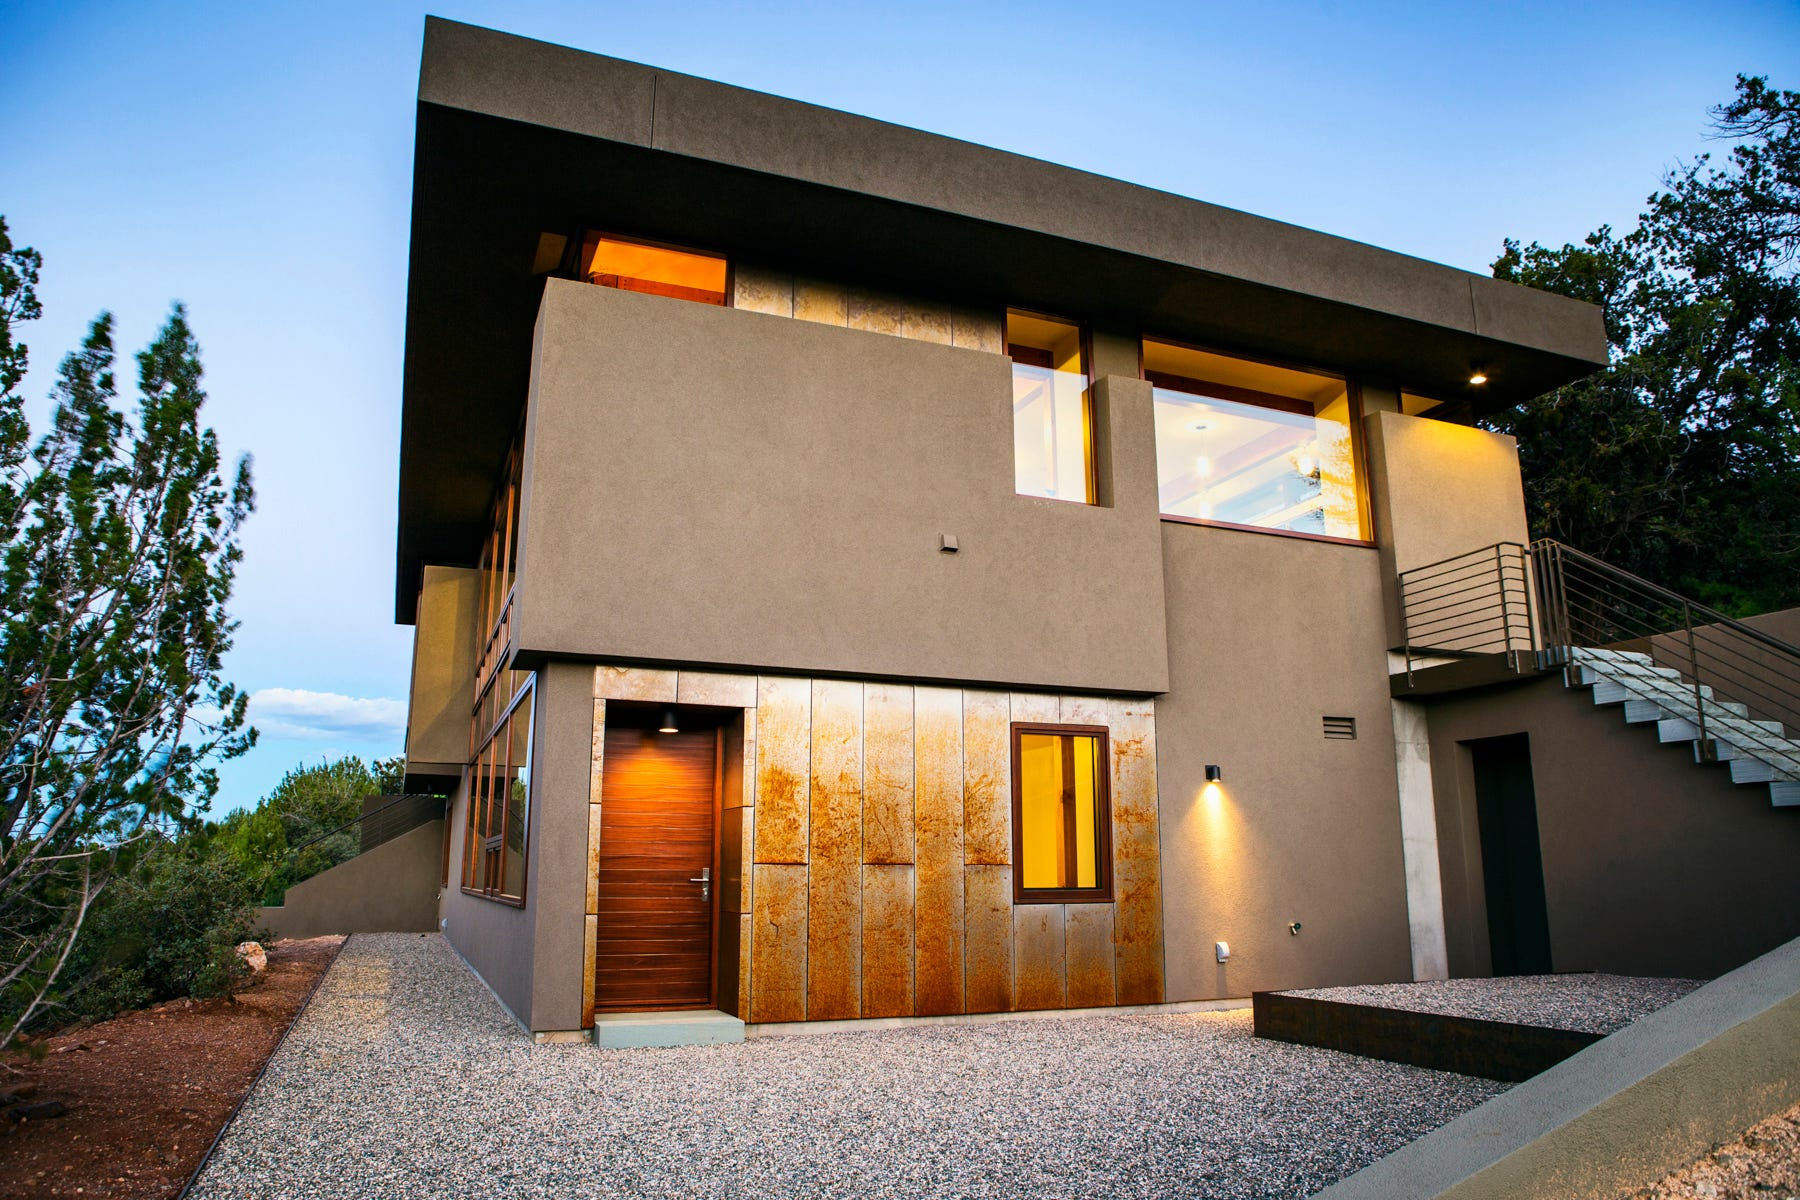 http://www.azcentral.com/picture-gallery/entertainment/home ...